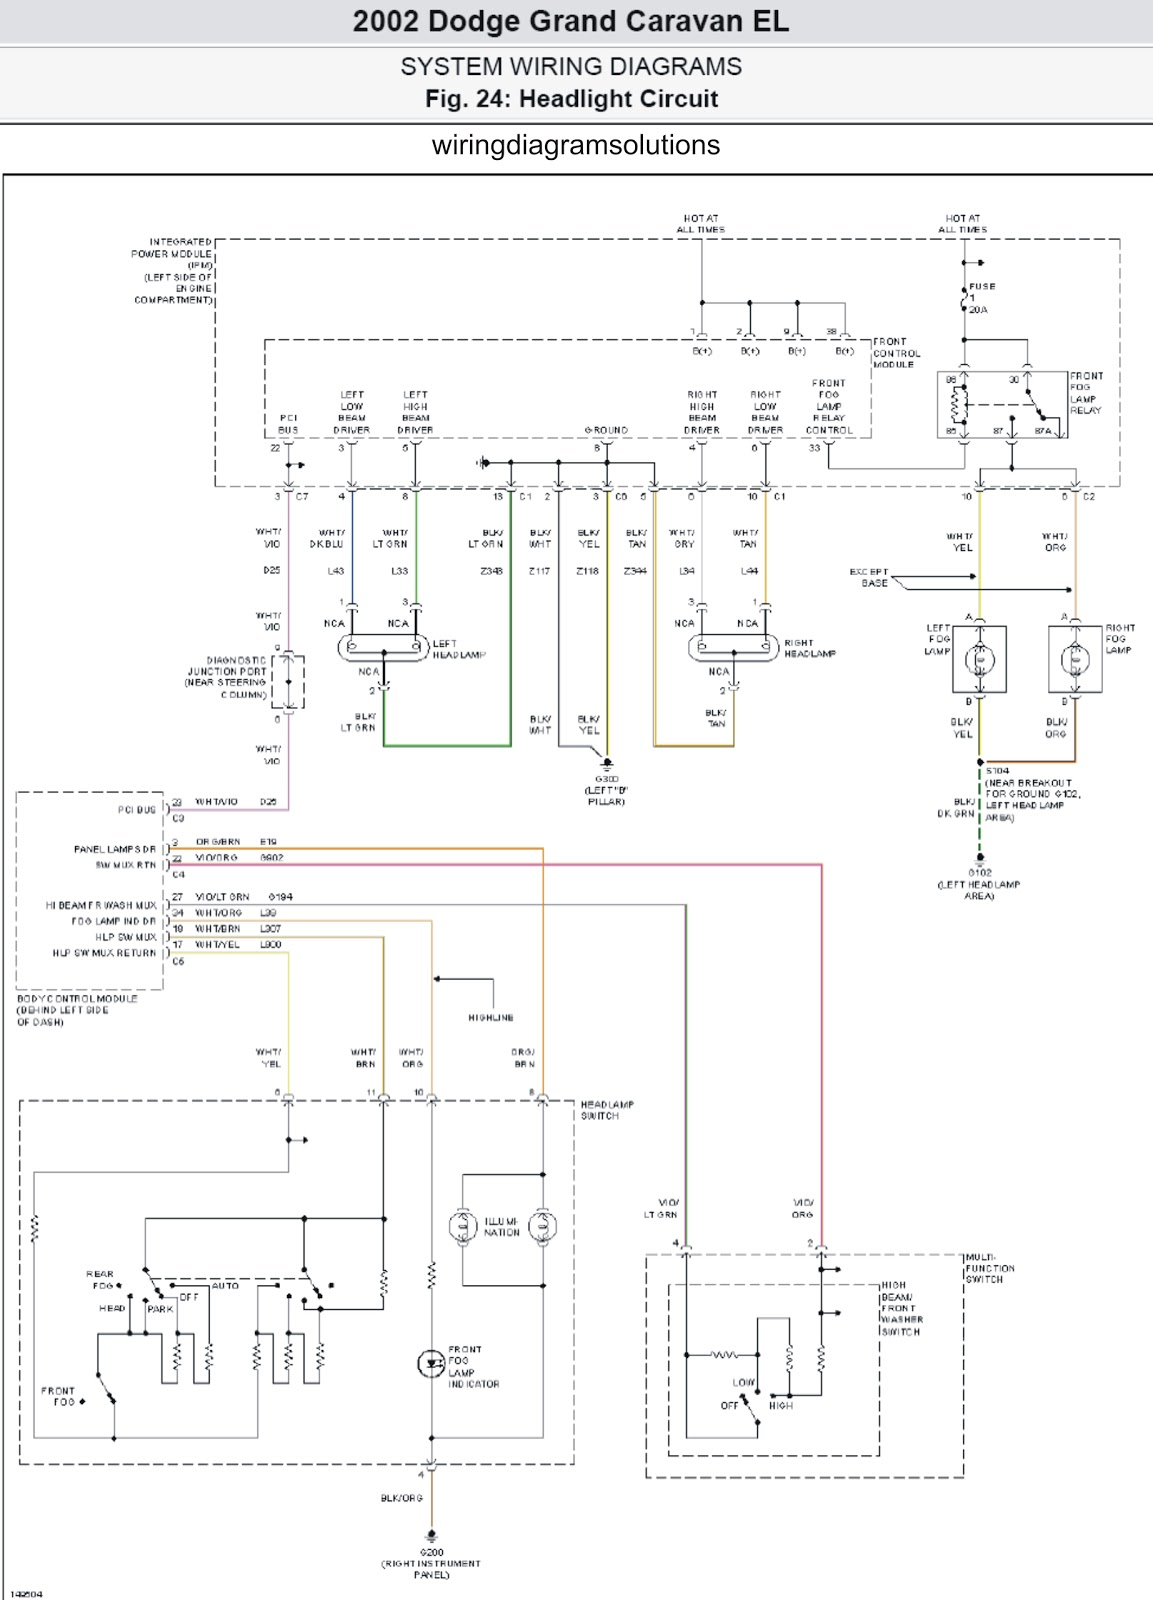 dodge grand caravan wiring diagram 1998 dodge grand caravan wiring diagram 2002 dodge grand caravan el system wiring diagrams ... #9